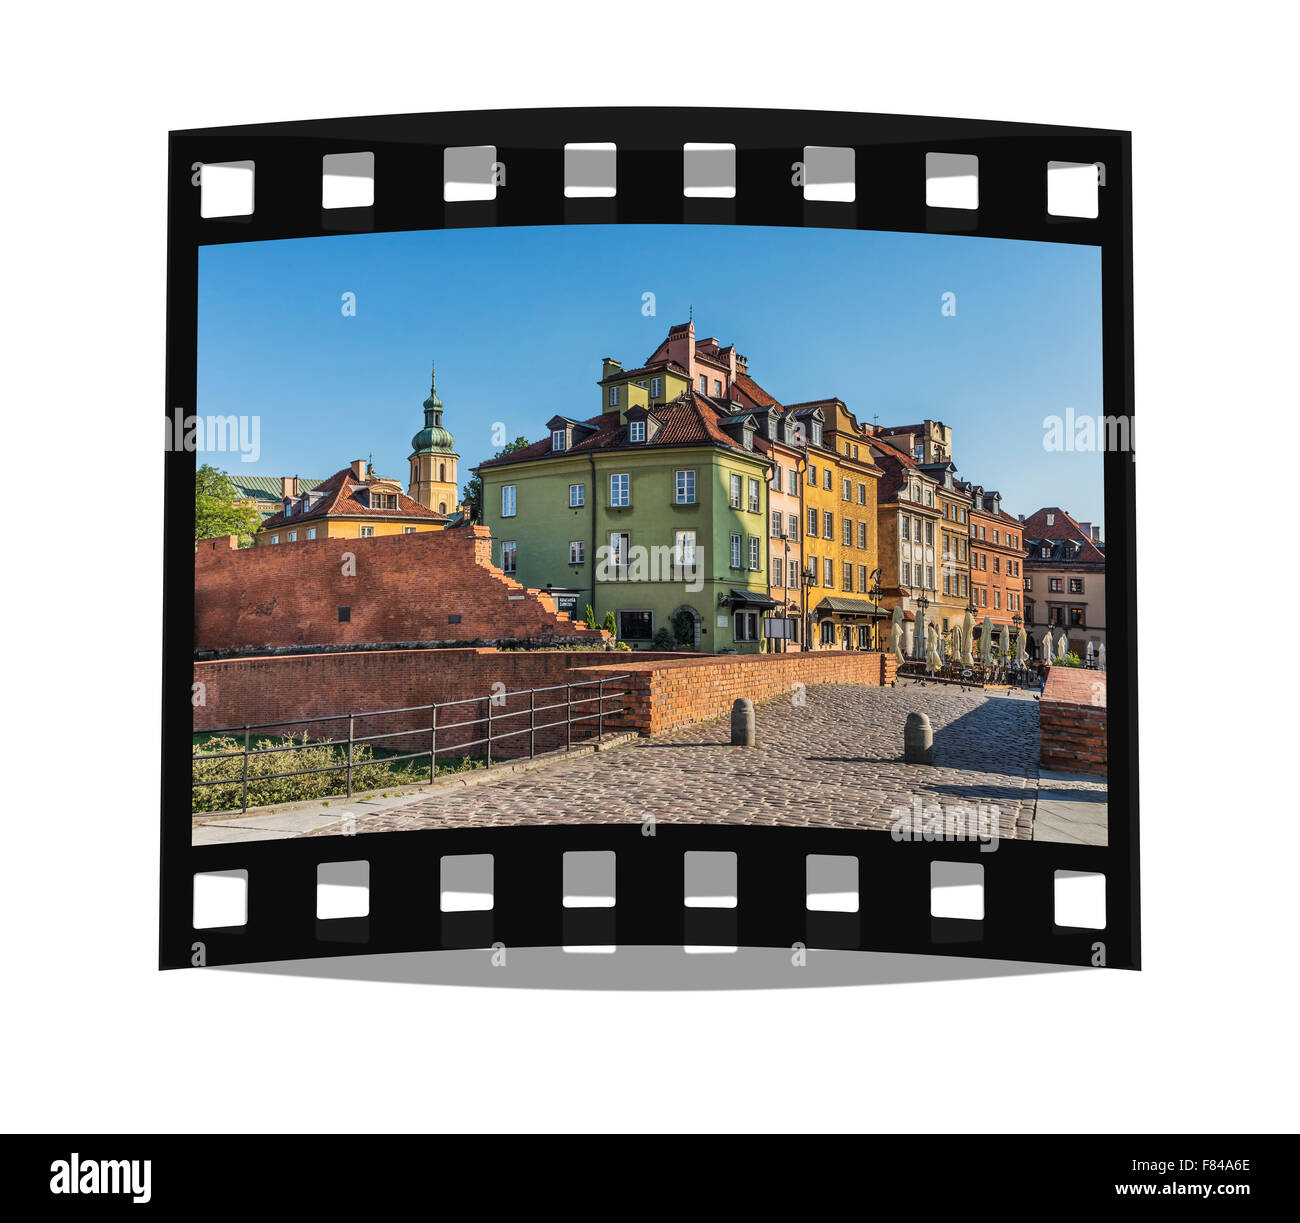 The Castle Square and parts of the old city wall, located in the historic old town of Warsaw, Masovia, Poland, Europe - Stock Image